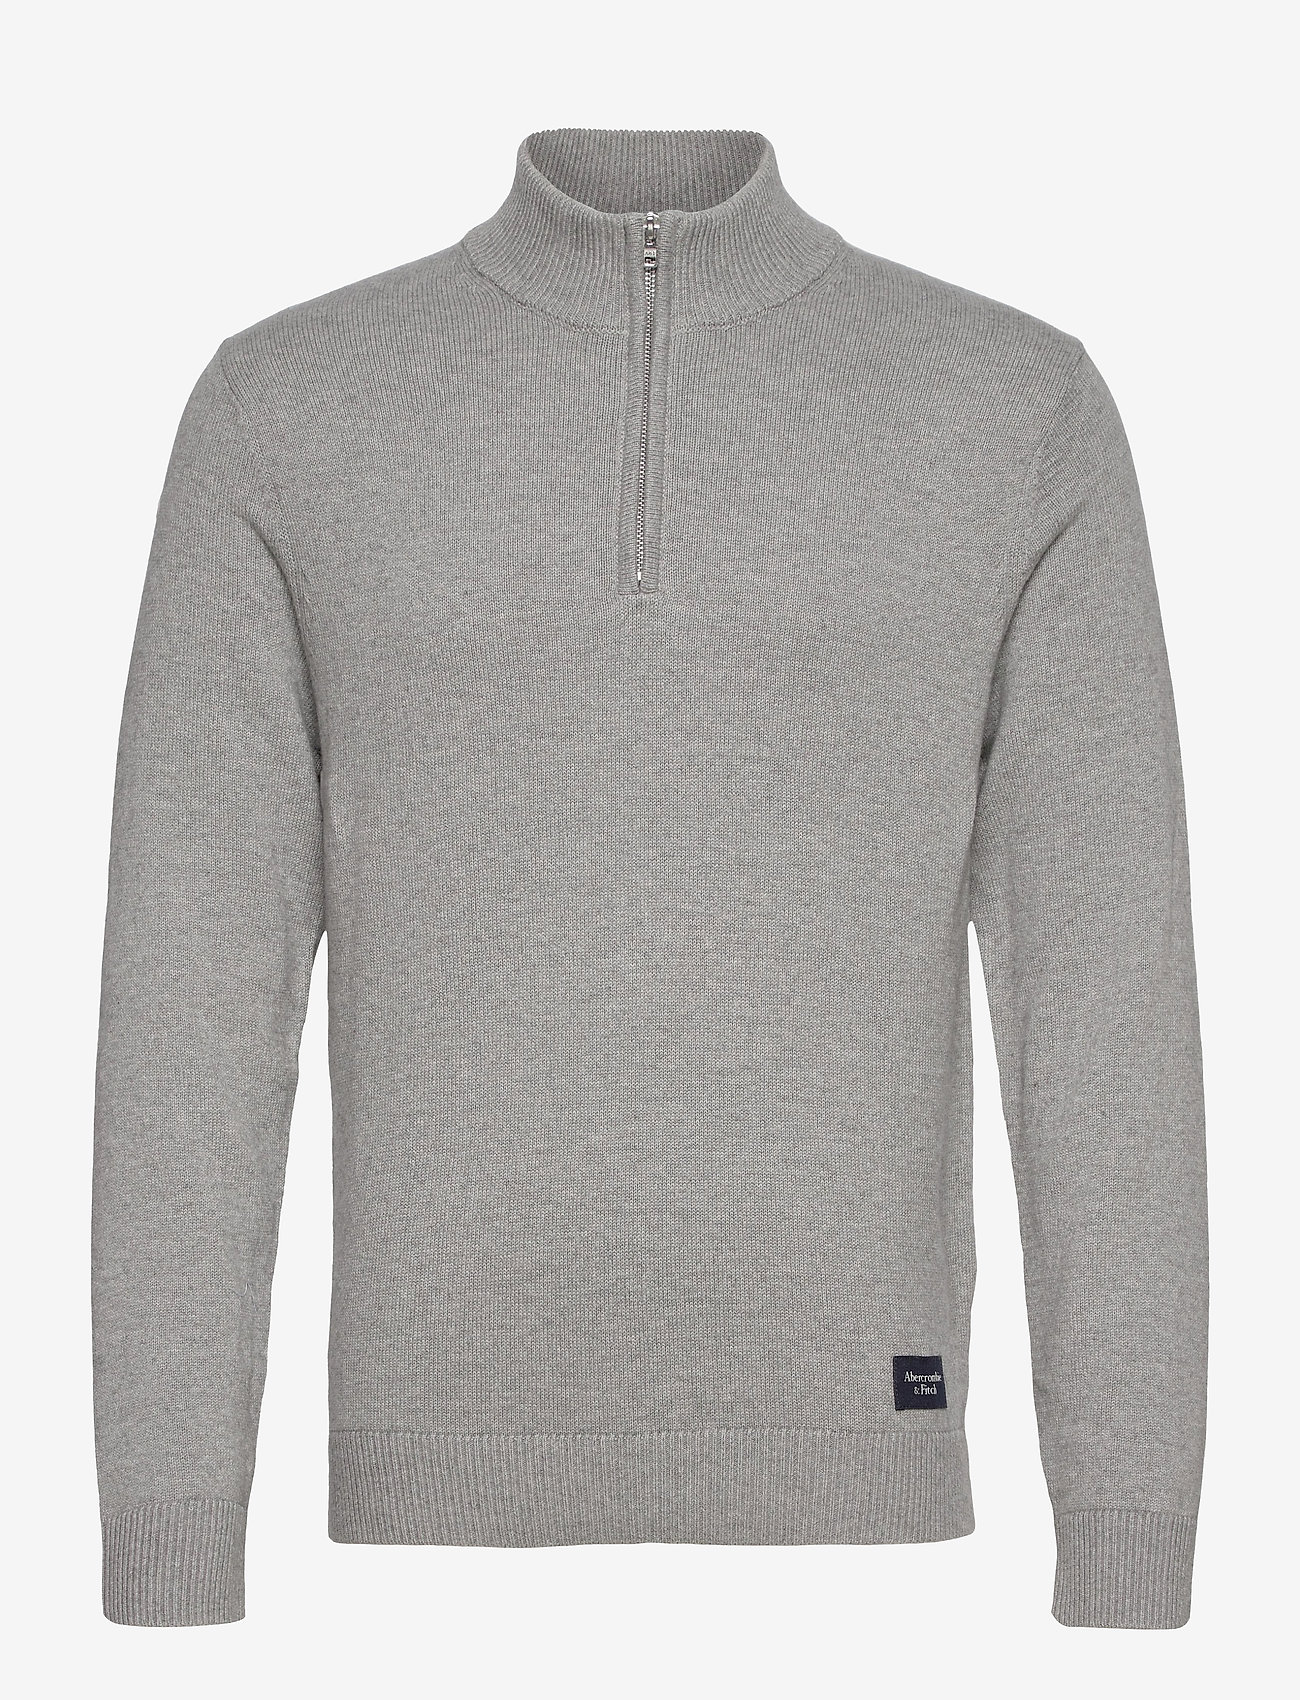 Abercrombie & Fitch - ANF MENS SWEATERS - half zip - med grey flat - 0